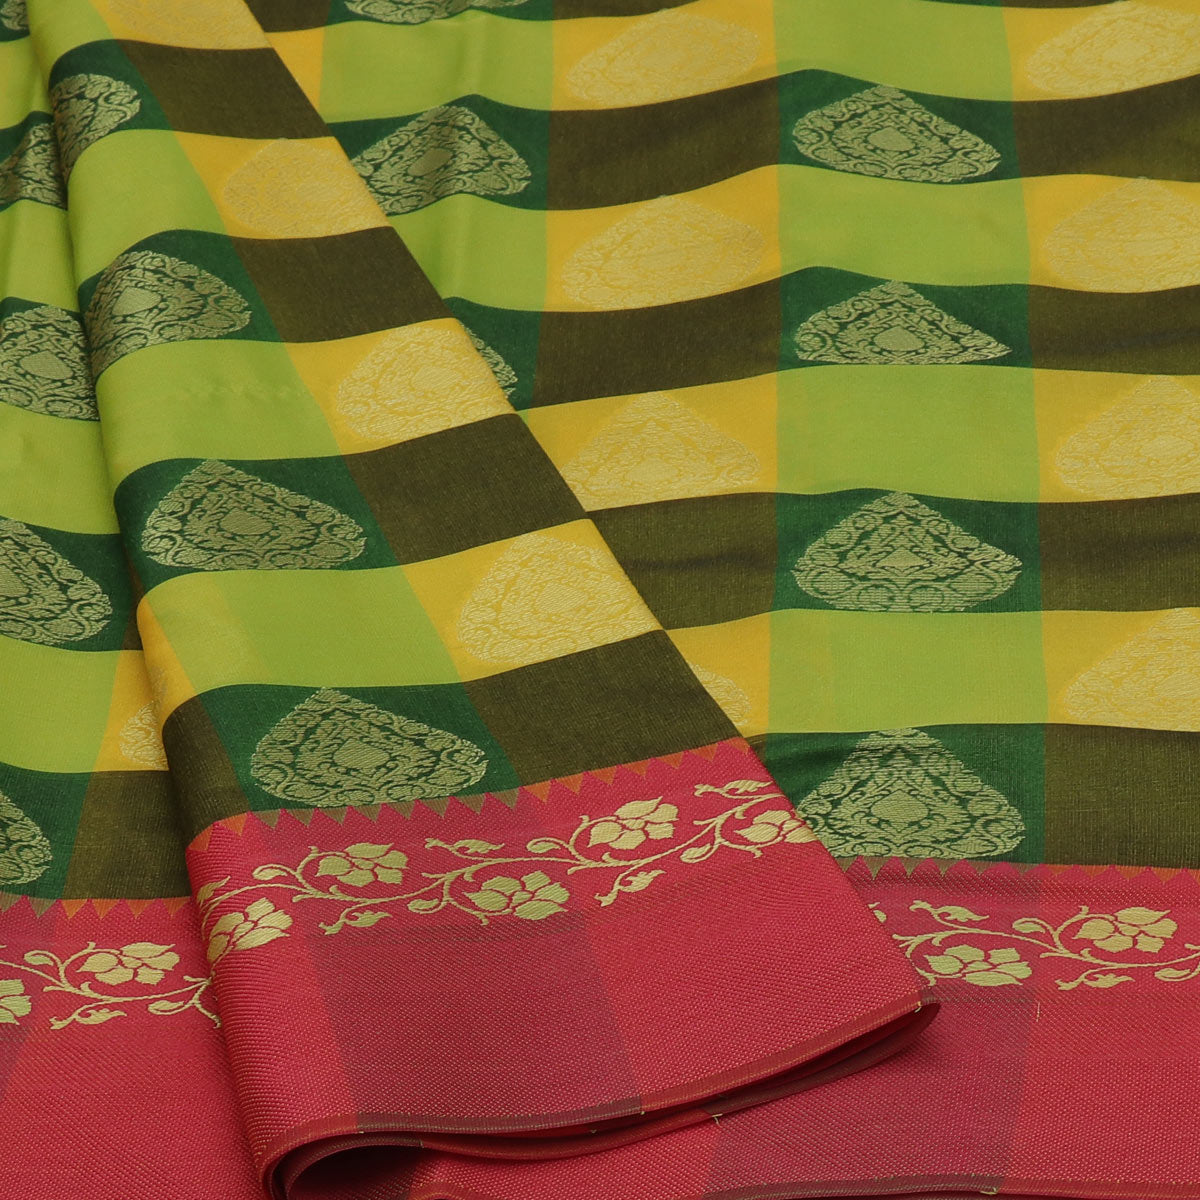 Banarasi Kora Muslin Saree Yellow and Green Checked with Pink Floral border